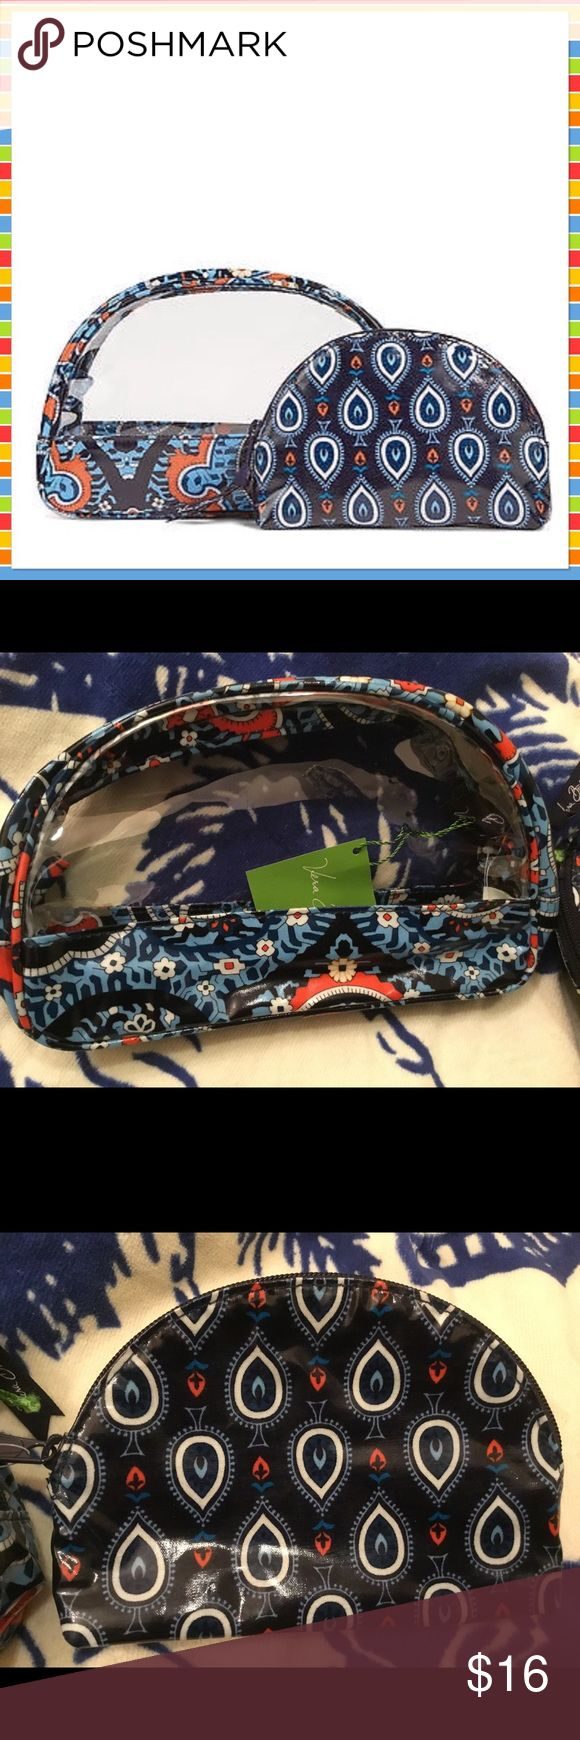 """Vera Bradley Clear Cosmetic Bag Duo Marrakesh NWT This is a brand new with tags Vera Bradley Clear Cosmetic Duo.  The pattern is Marrakesh.  Small Cosmetic: 6"""" x 4"""" x 1 ¼"""" Large Cosmetic: 8"""" x 5"""" x 2 ½"""".  Zip closure. Vera Bradley Bags Cosmetic Bags & Cases"""